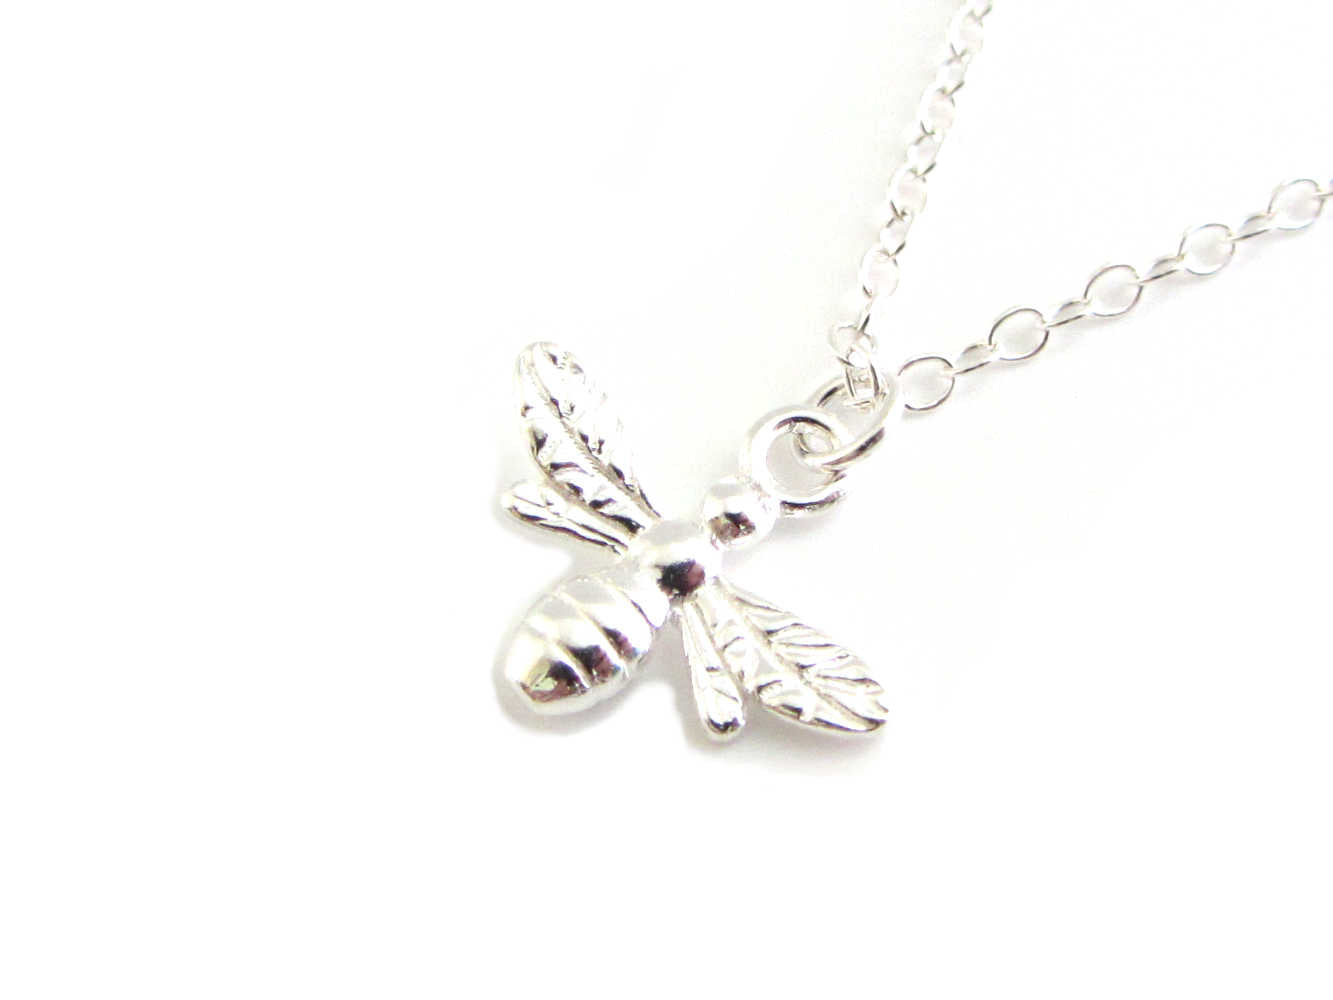 silver bee charm on a silver chain